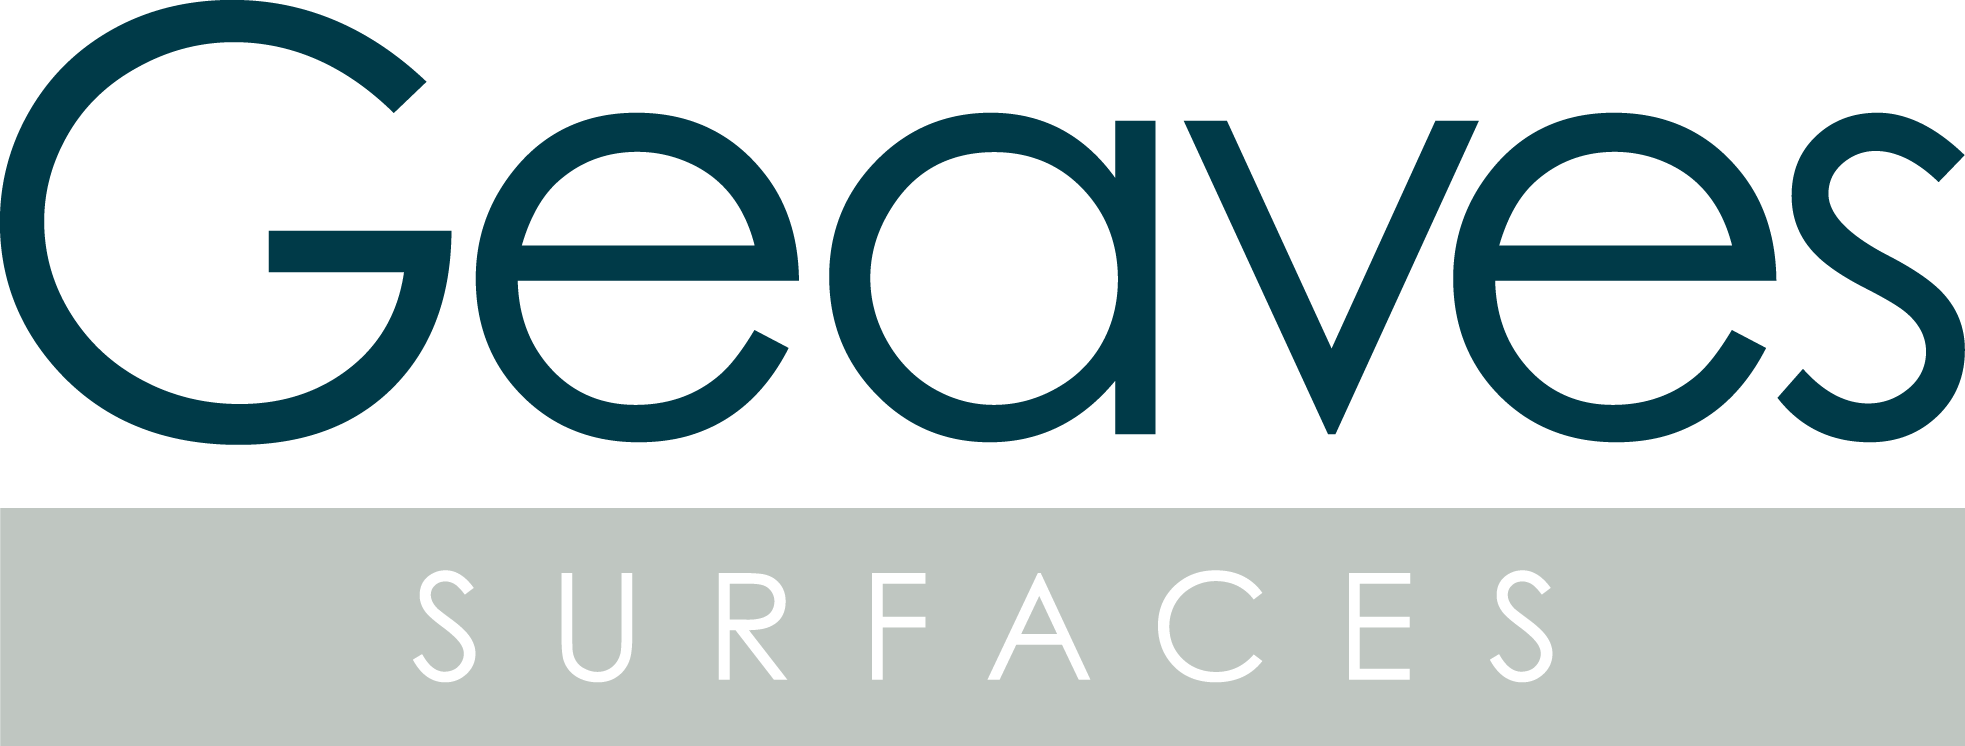 Geaves Surfaces UK